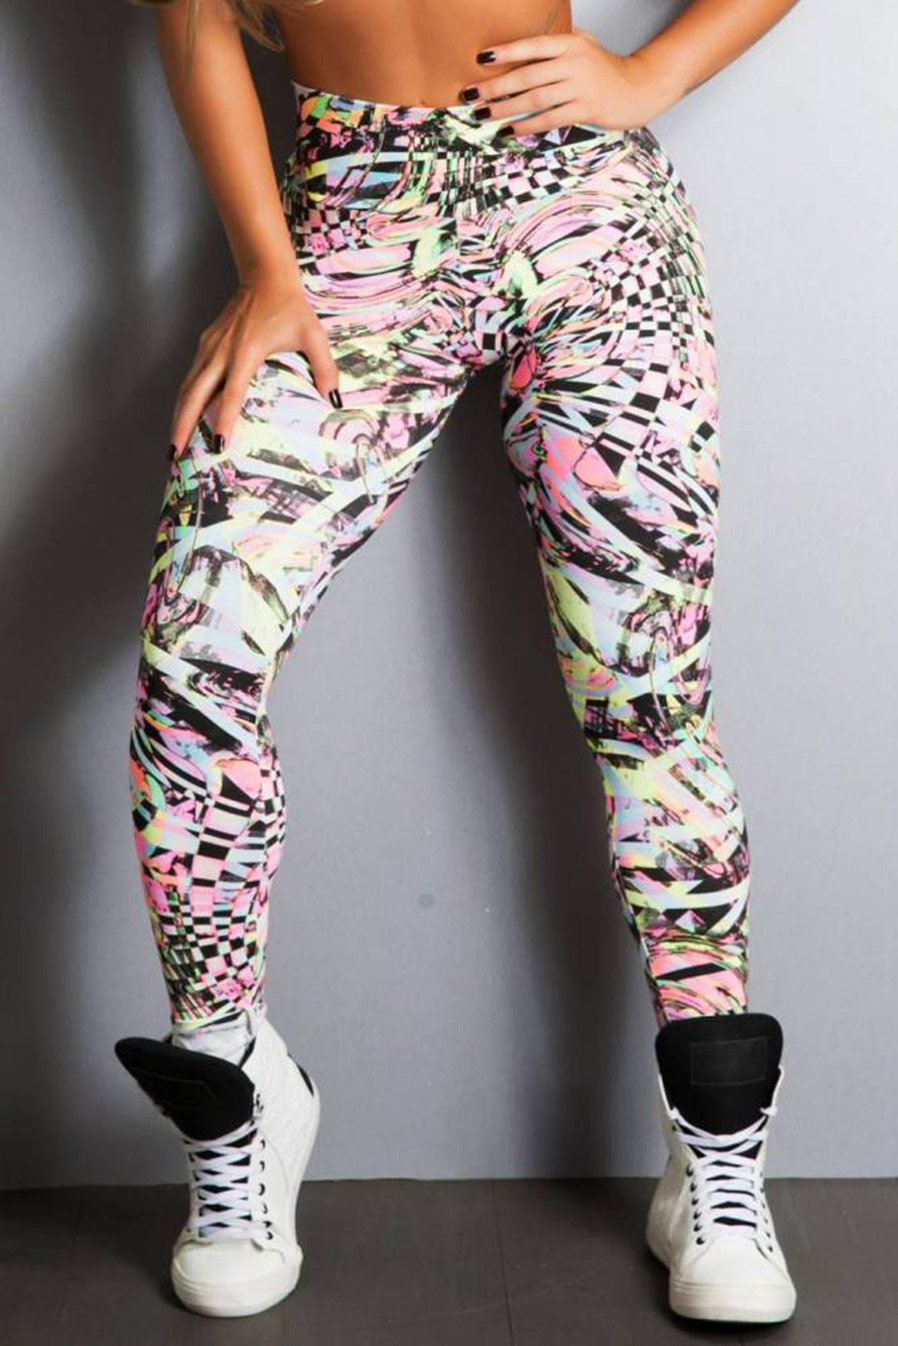 Legging Fitness Supplex Cós Alto Mix Flok